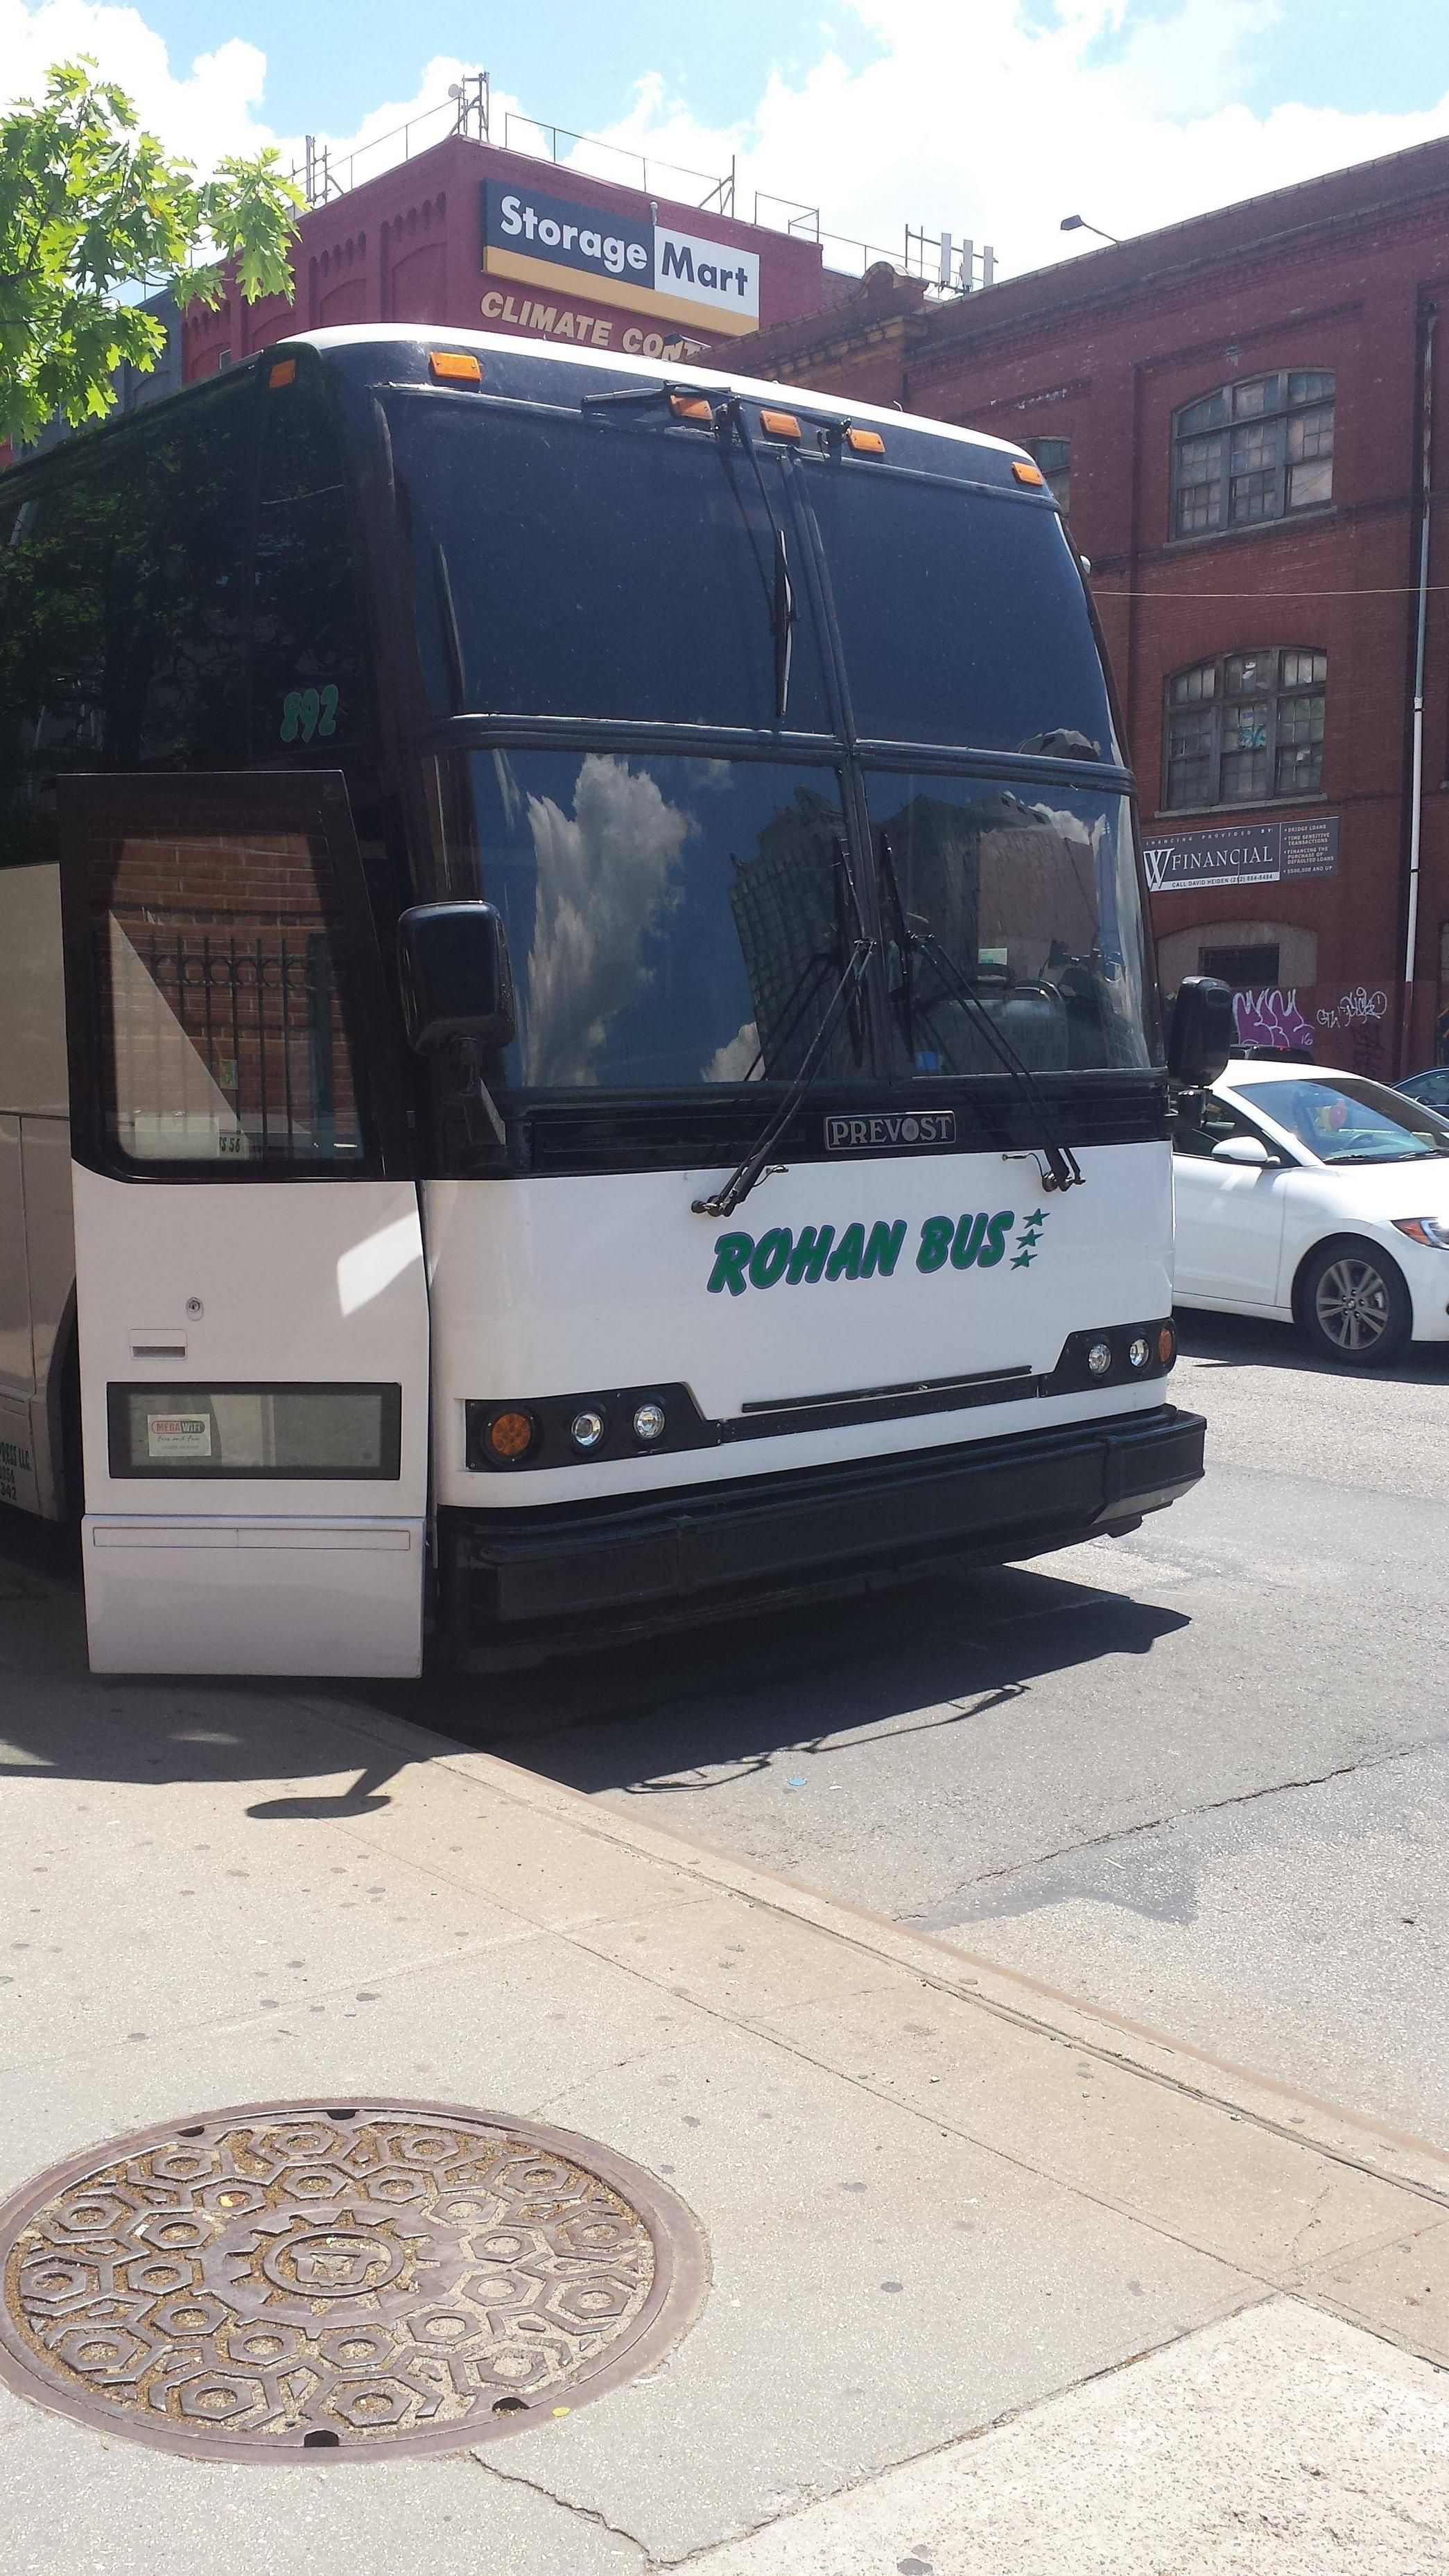 The riders of Rohan now travel coach!